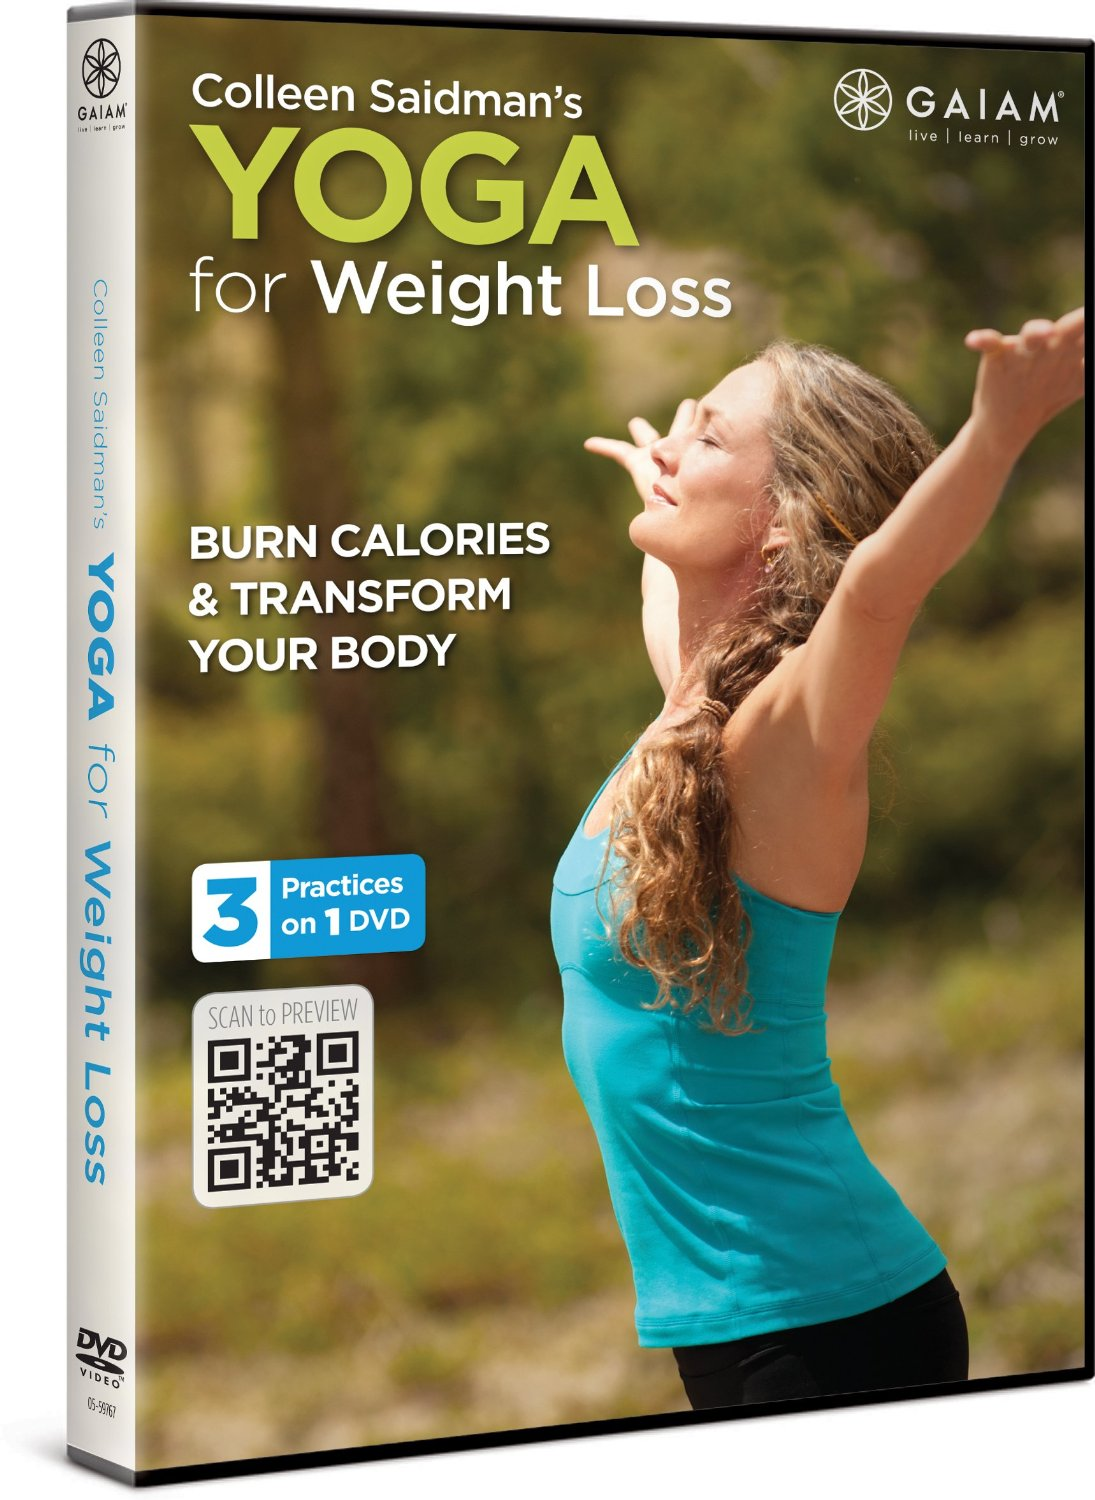 Workout DVDs- Colleen Saidman's Yoga for Weight Loss